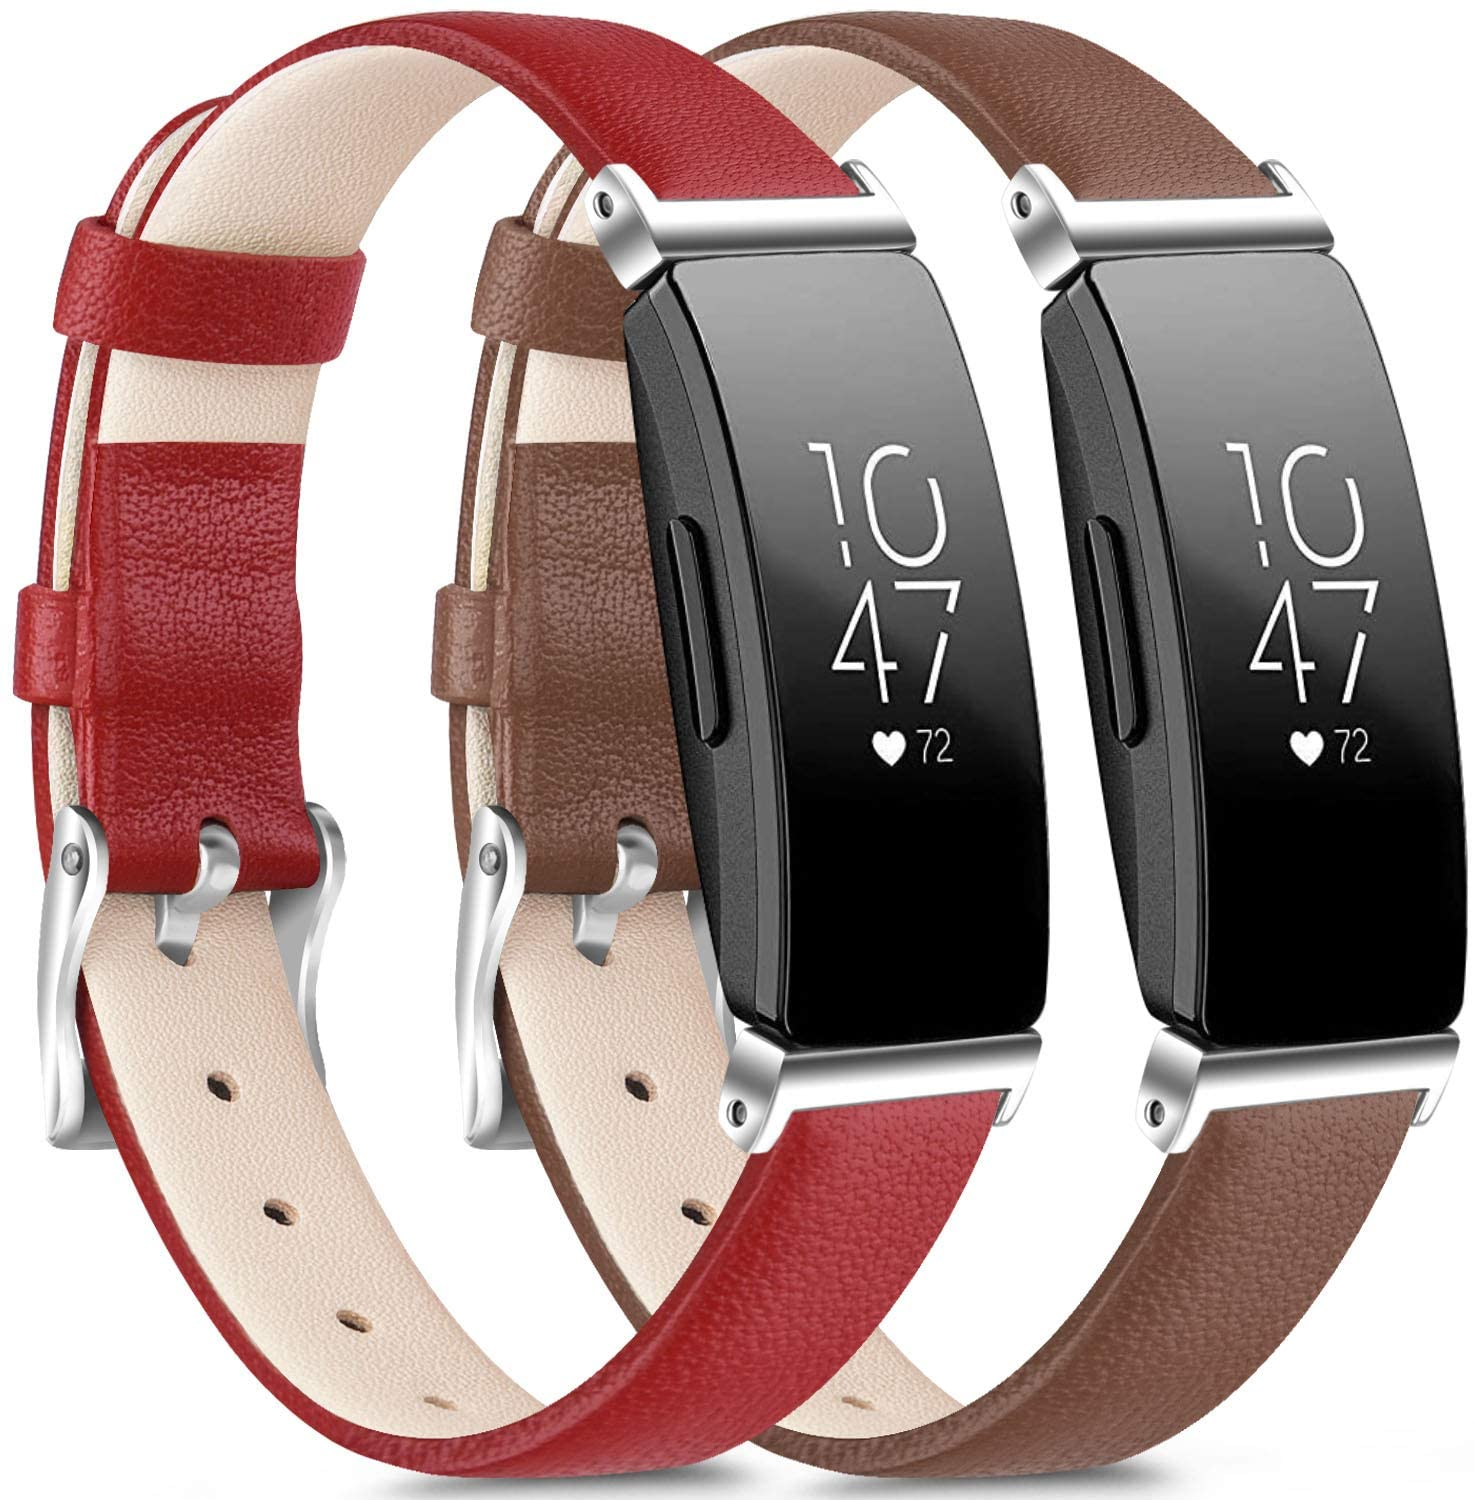 [2 Pack] Leather Bands Compatible with Fitbit Inspire HR Bands for Women Men, Replacement Leather Bands for Fitbit Inspire & Fitbit Ace 2 & Fitbit Inspire HR (Red, Brown)